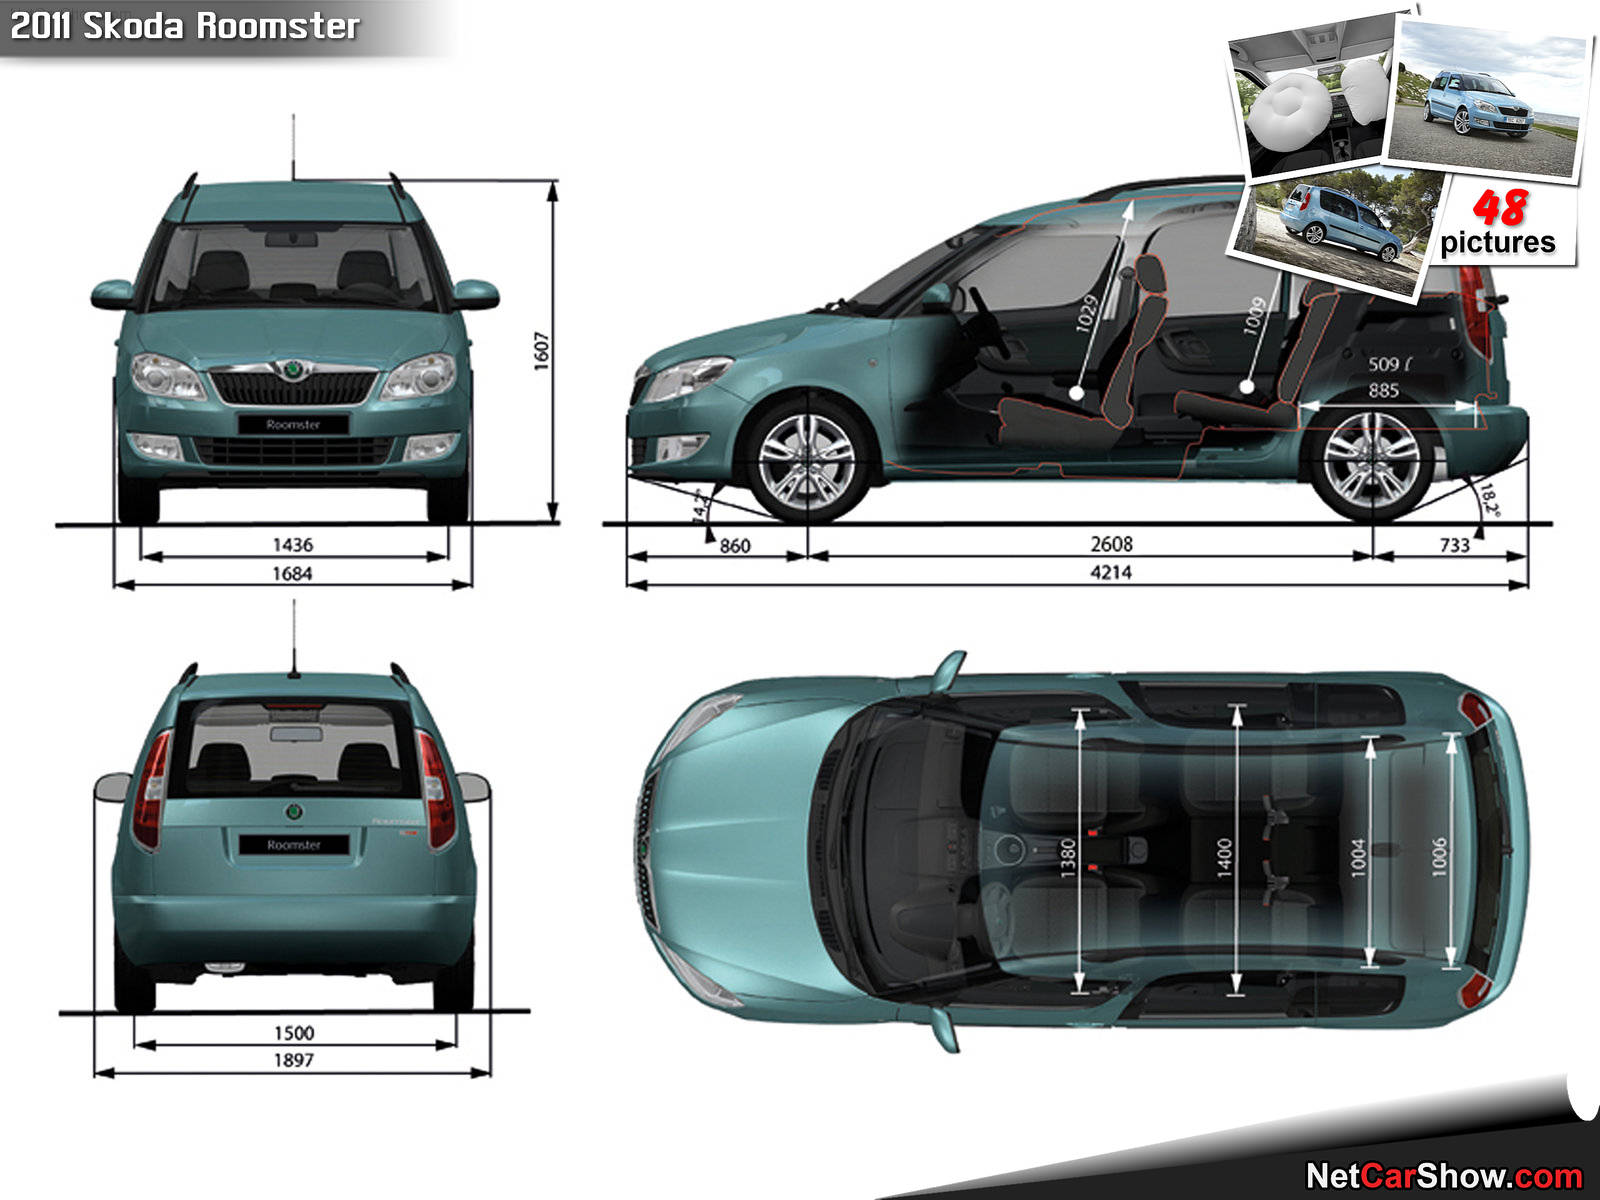 skoda roomster pictures